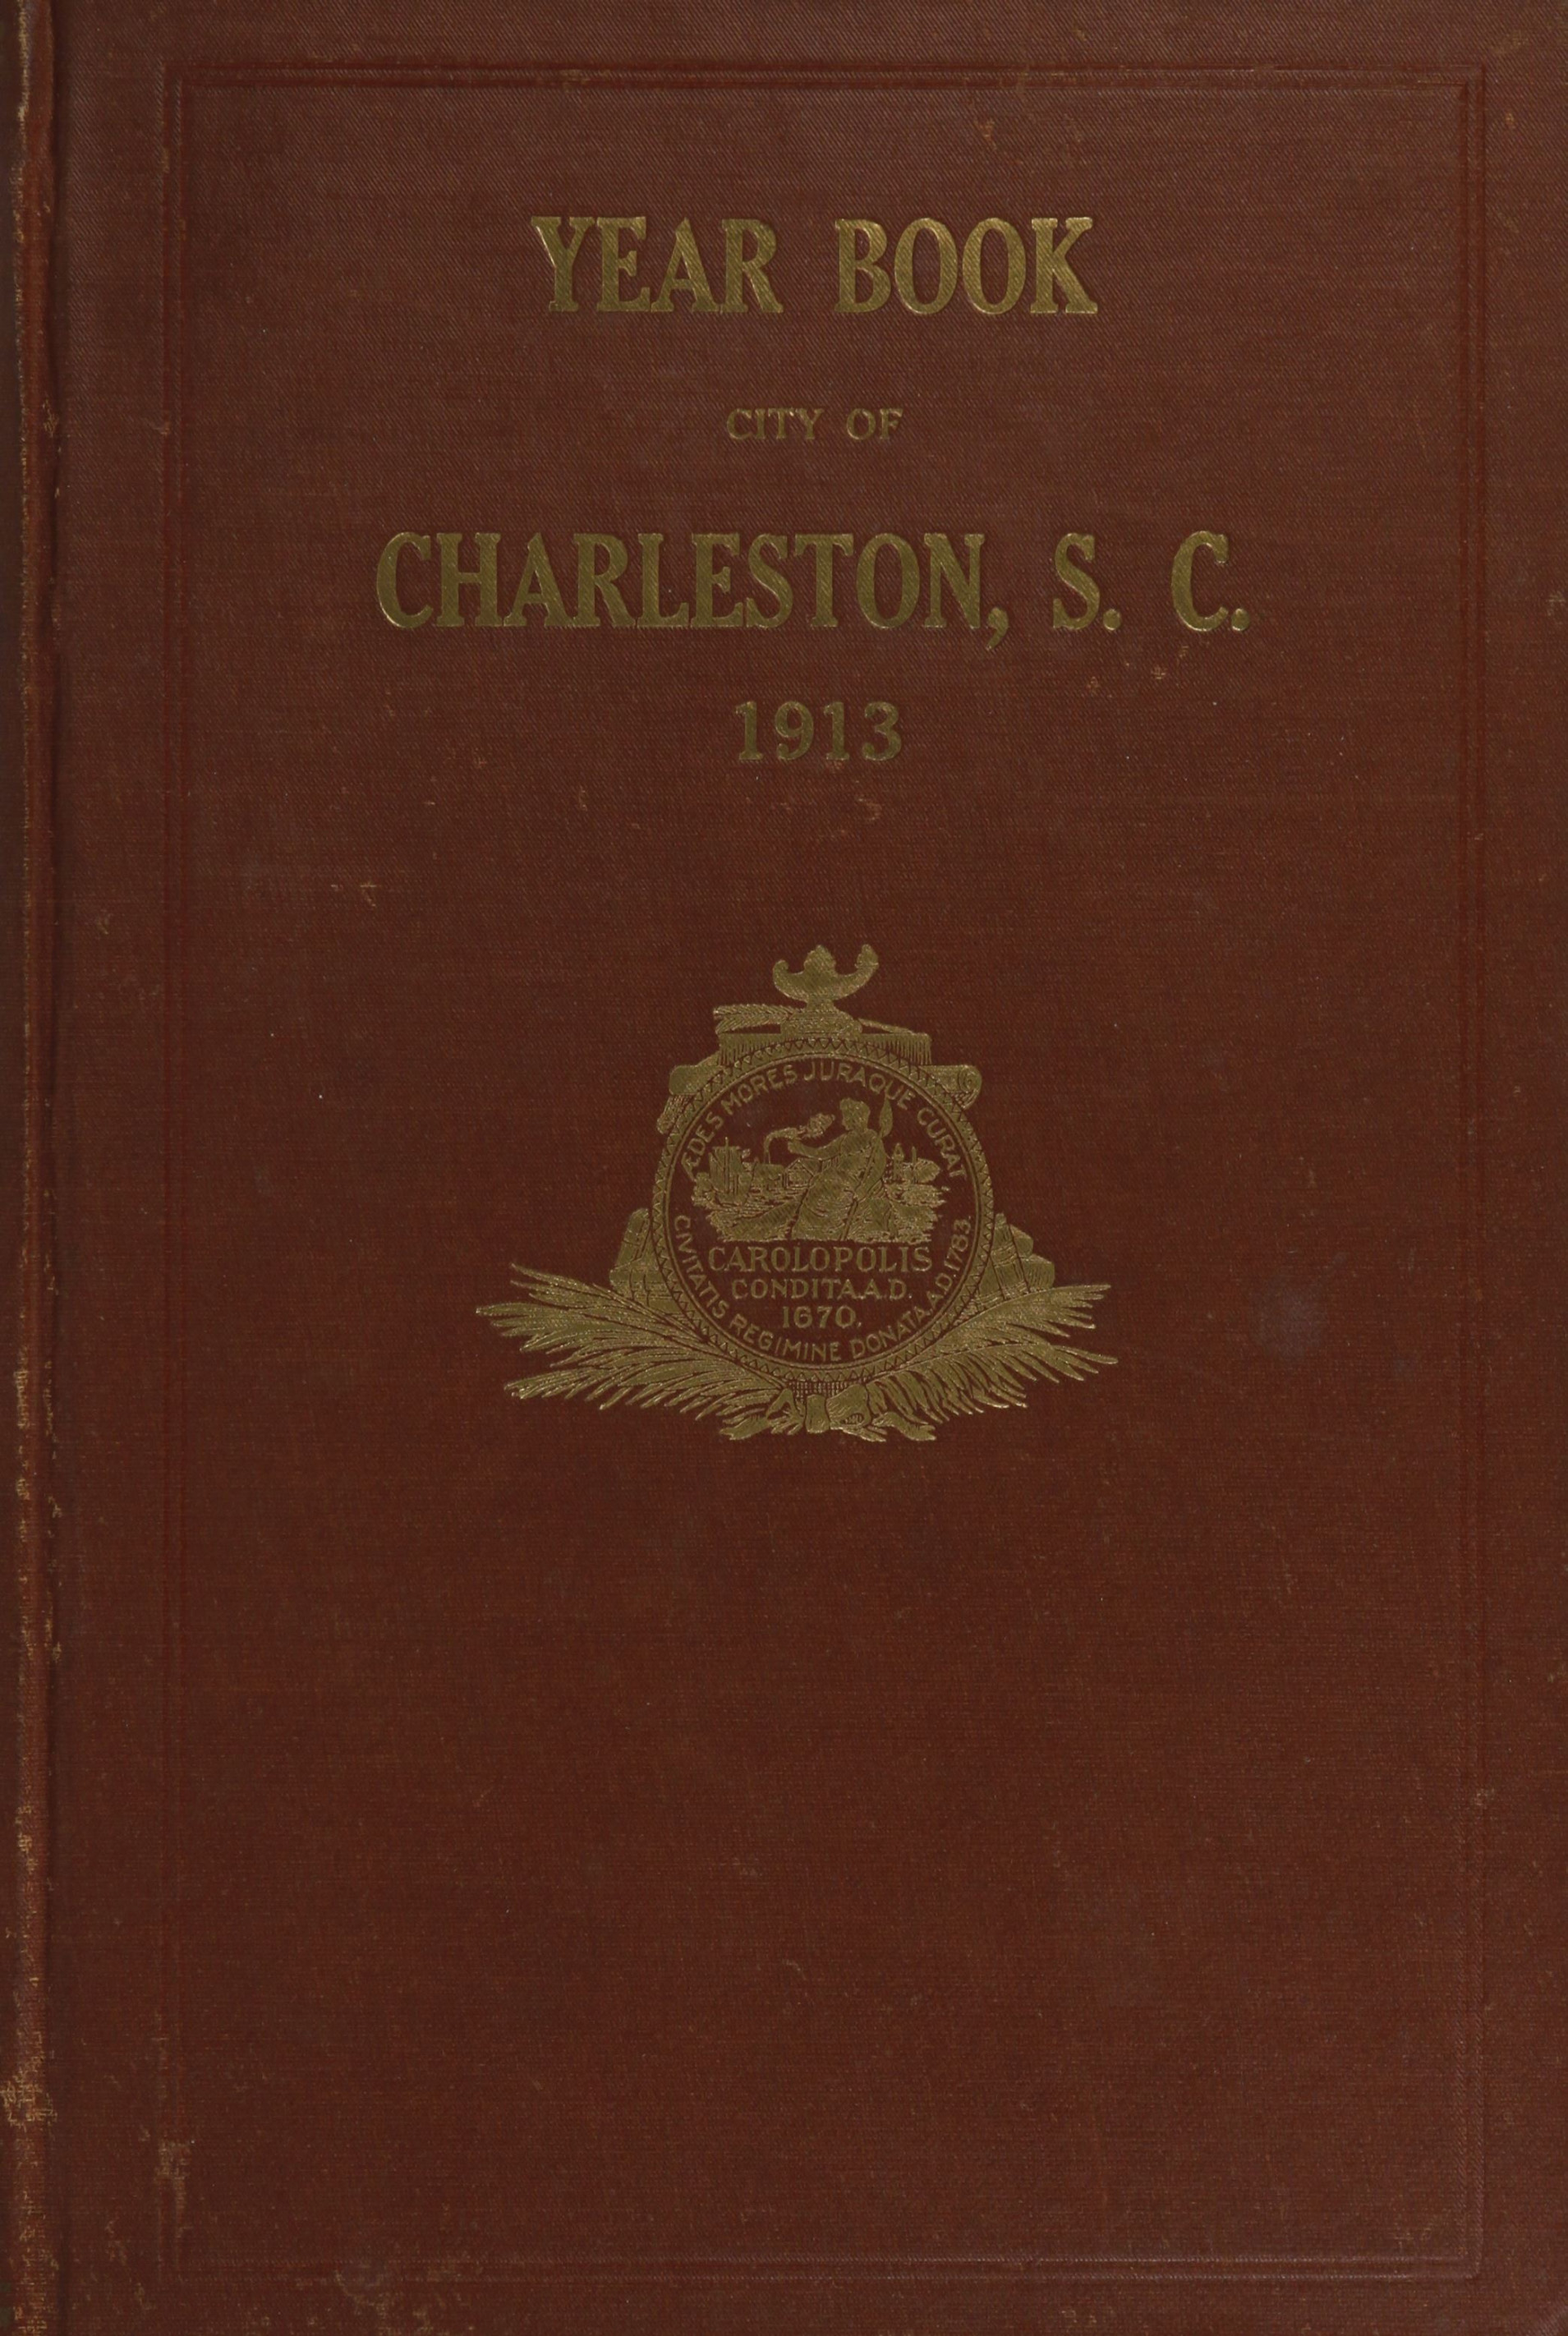 Charleston Yearbook, 1913